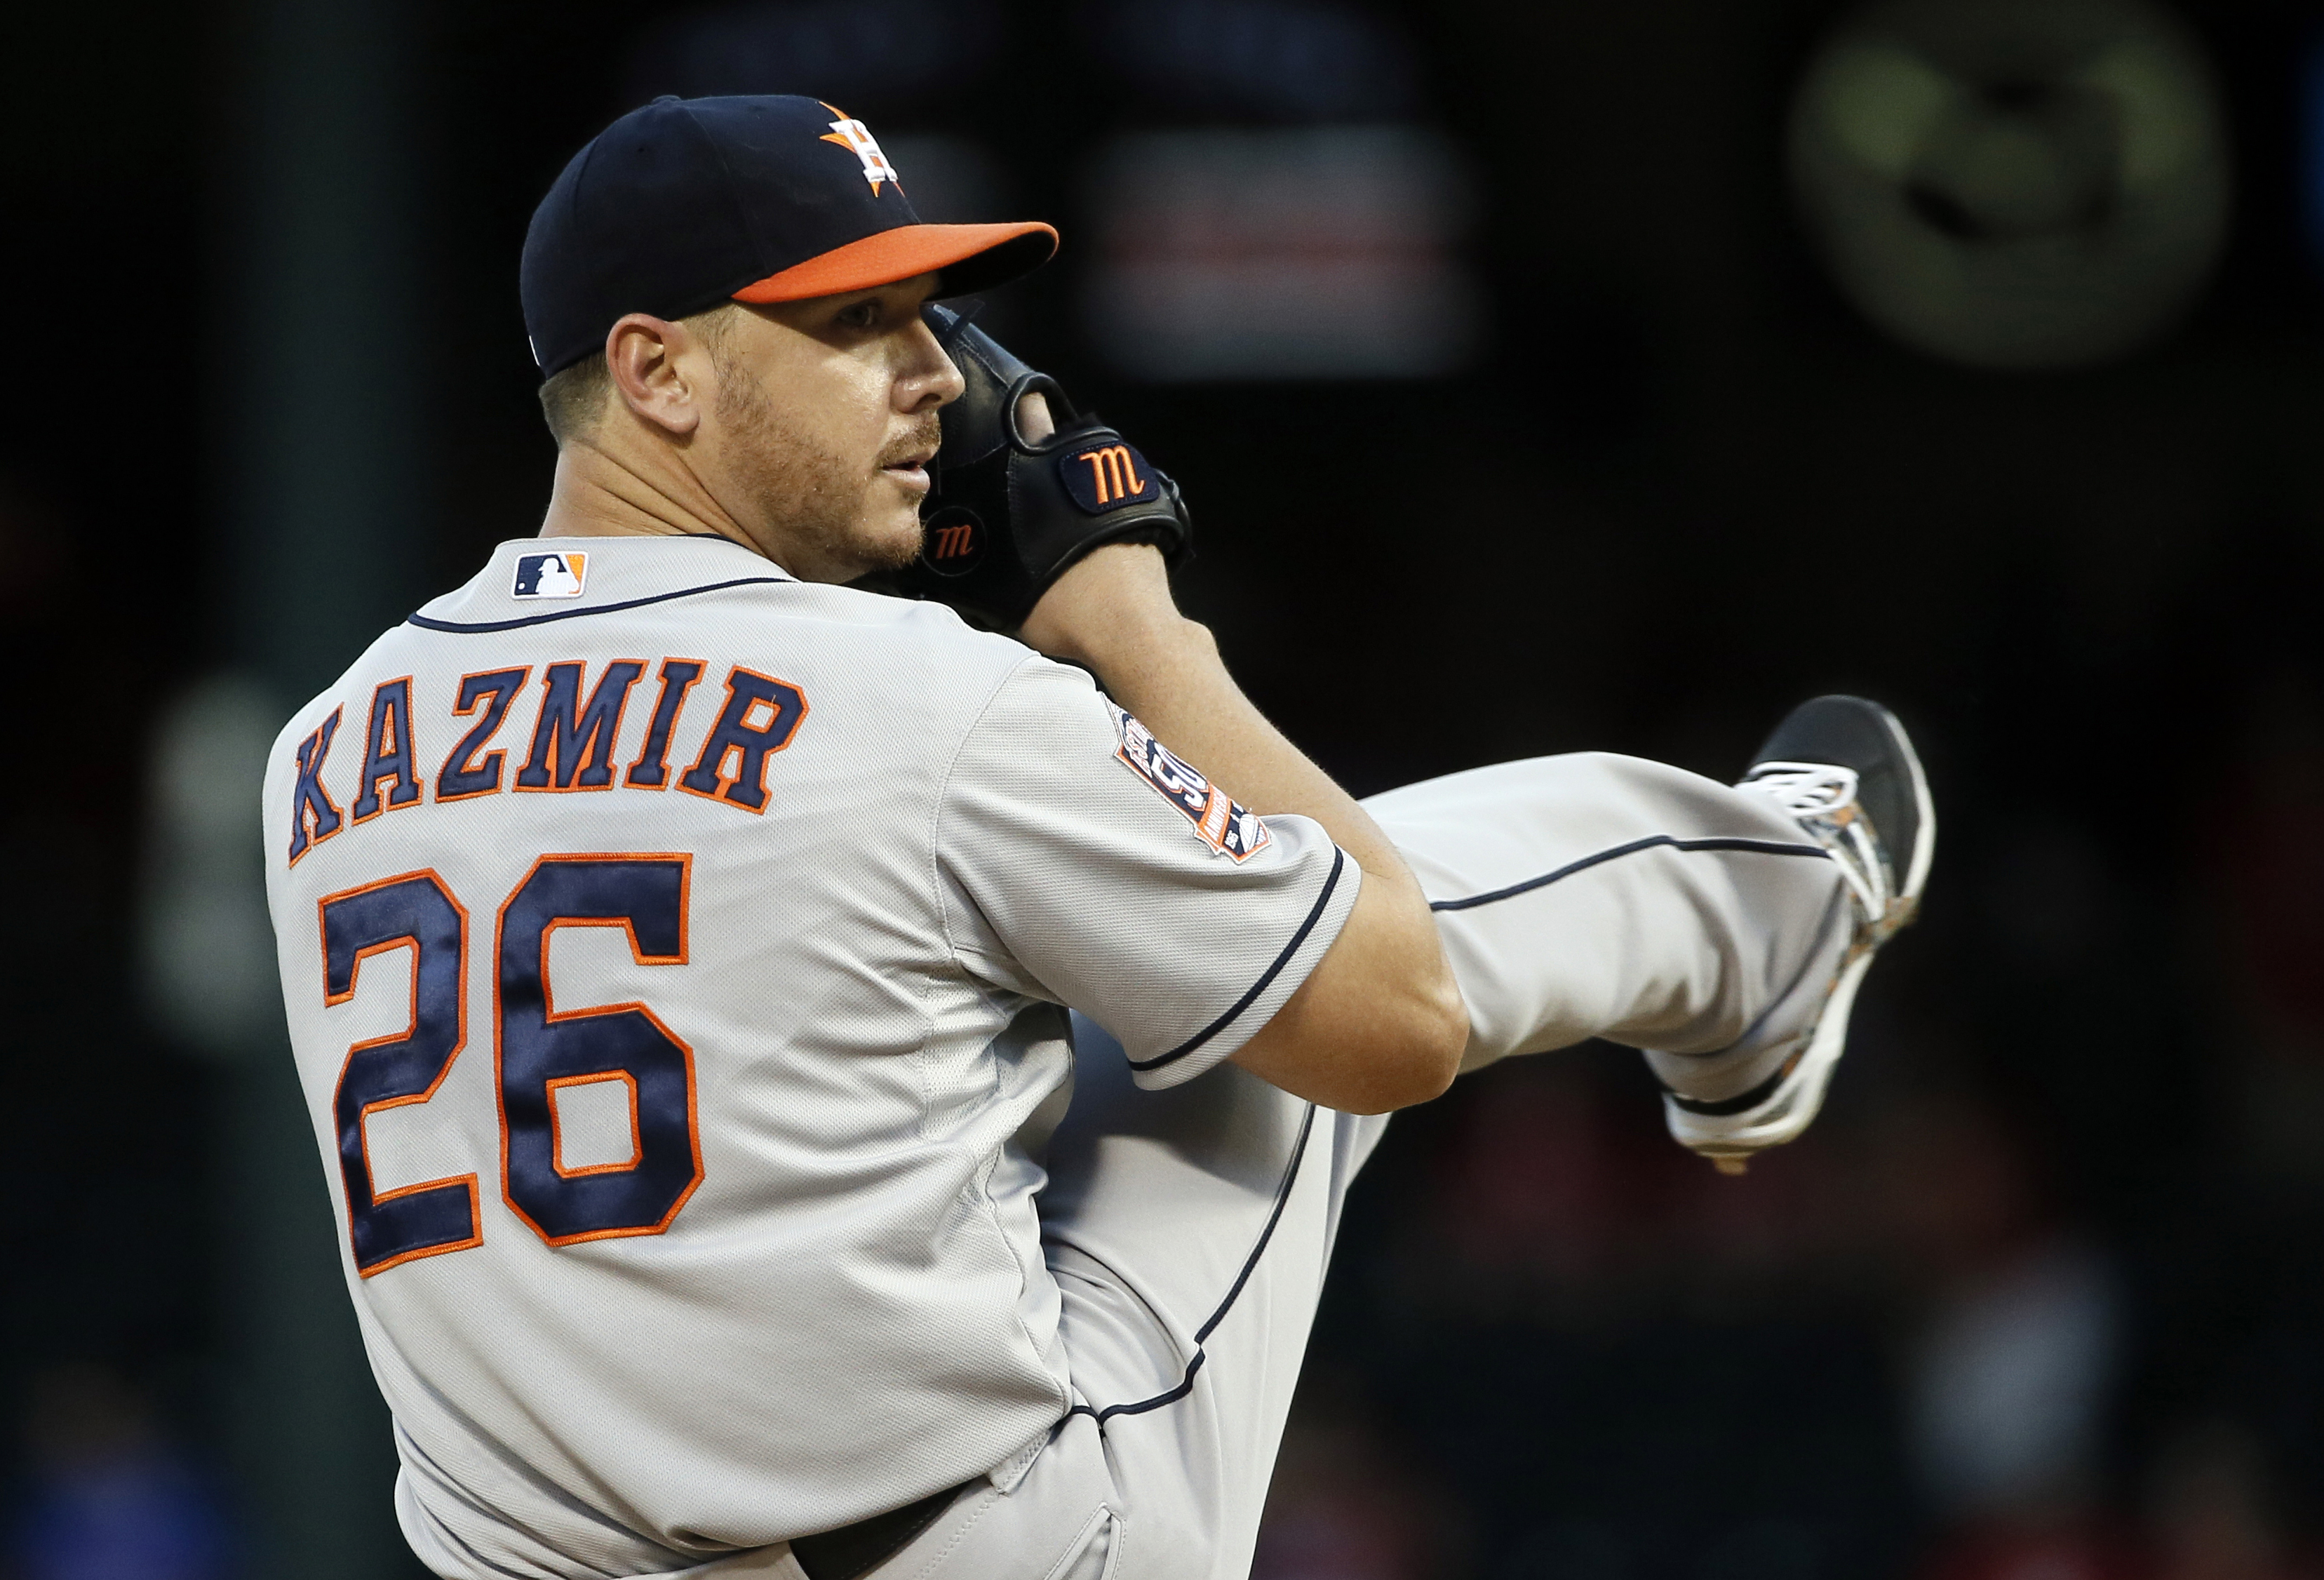 FILE - In this Sept. 14, 2015, file photo, Houston Astros starting pitcher Scott Kazmir (26) works against the Texas Rangers during a baseball game in Arlington, Texas. Kazmir's $48 million, three-year contract with the Los Angeles Dodgers includes paymen